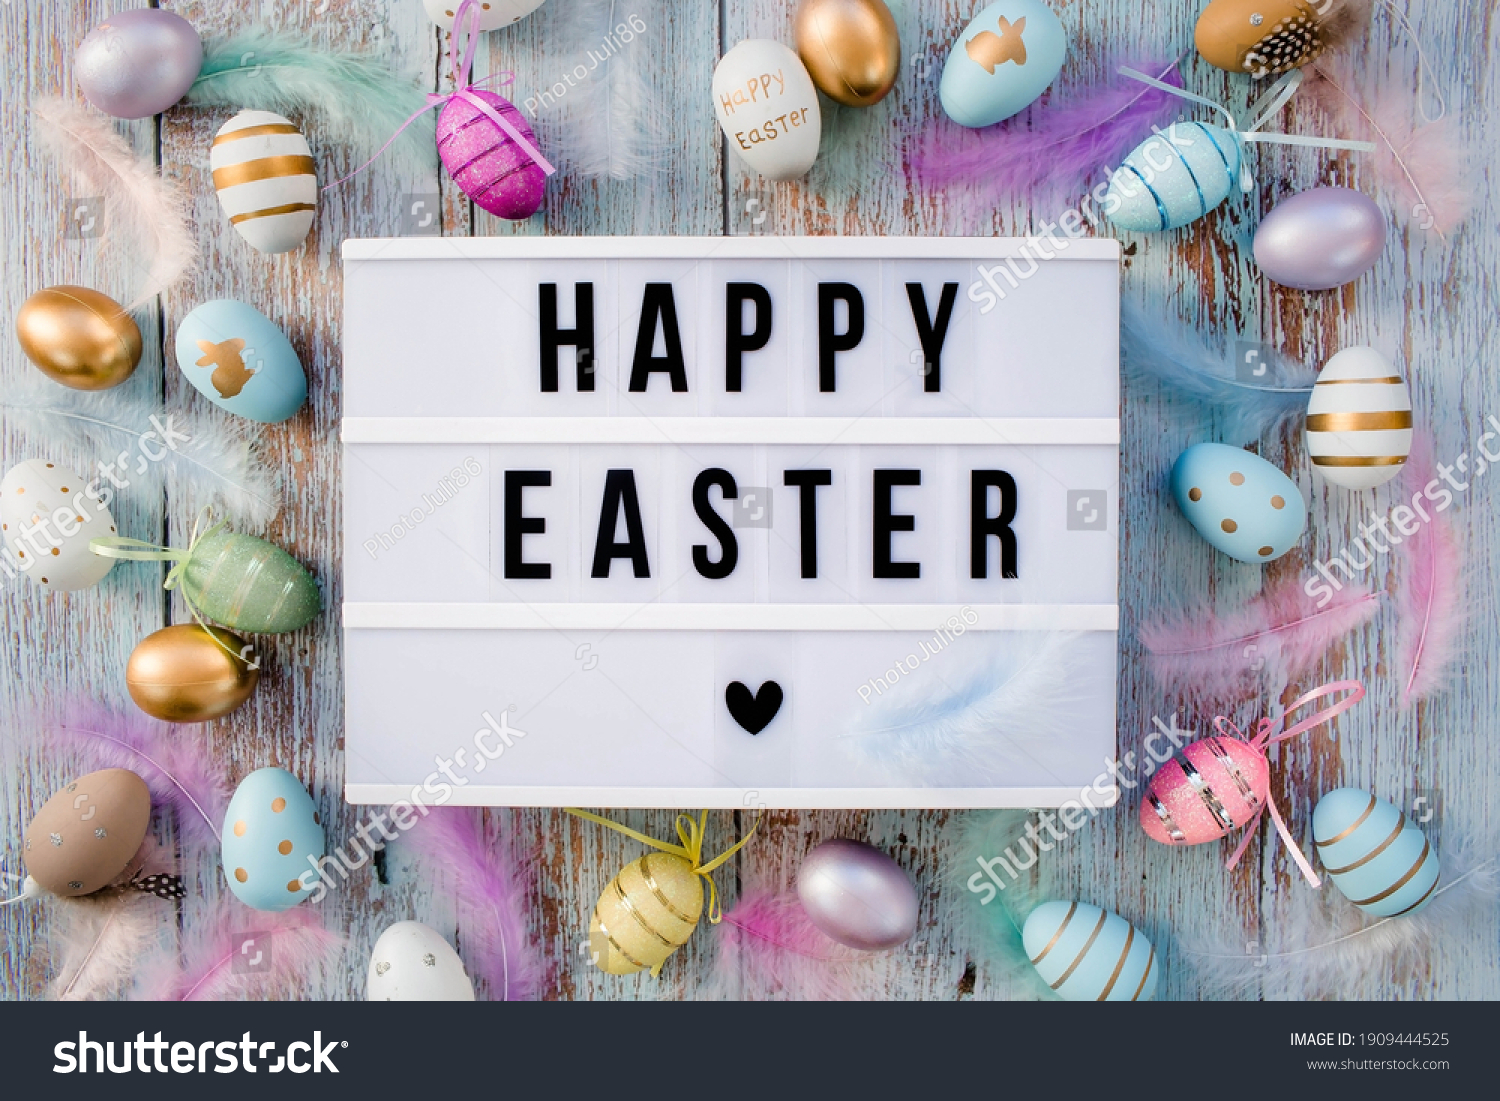 Stylish text frame of the lightbox with the inscription happy easter. Pink, blue, white, gold, and yellow eggs are everywhere. Colorful Easter eggs top view. Copyspace. #1909444525